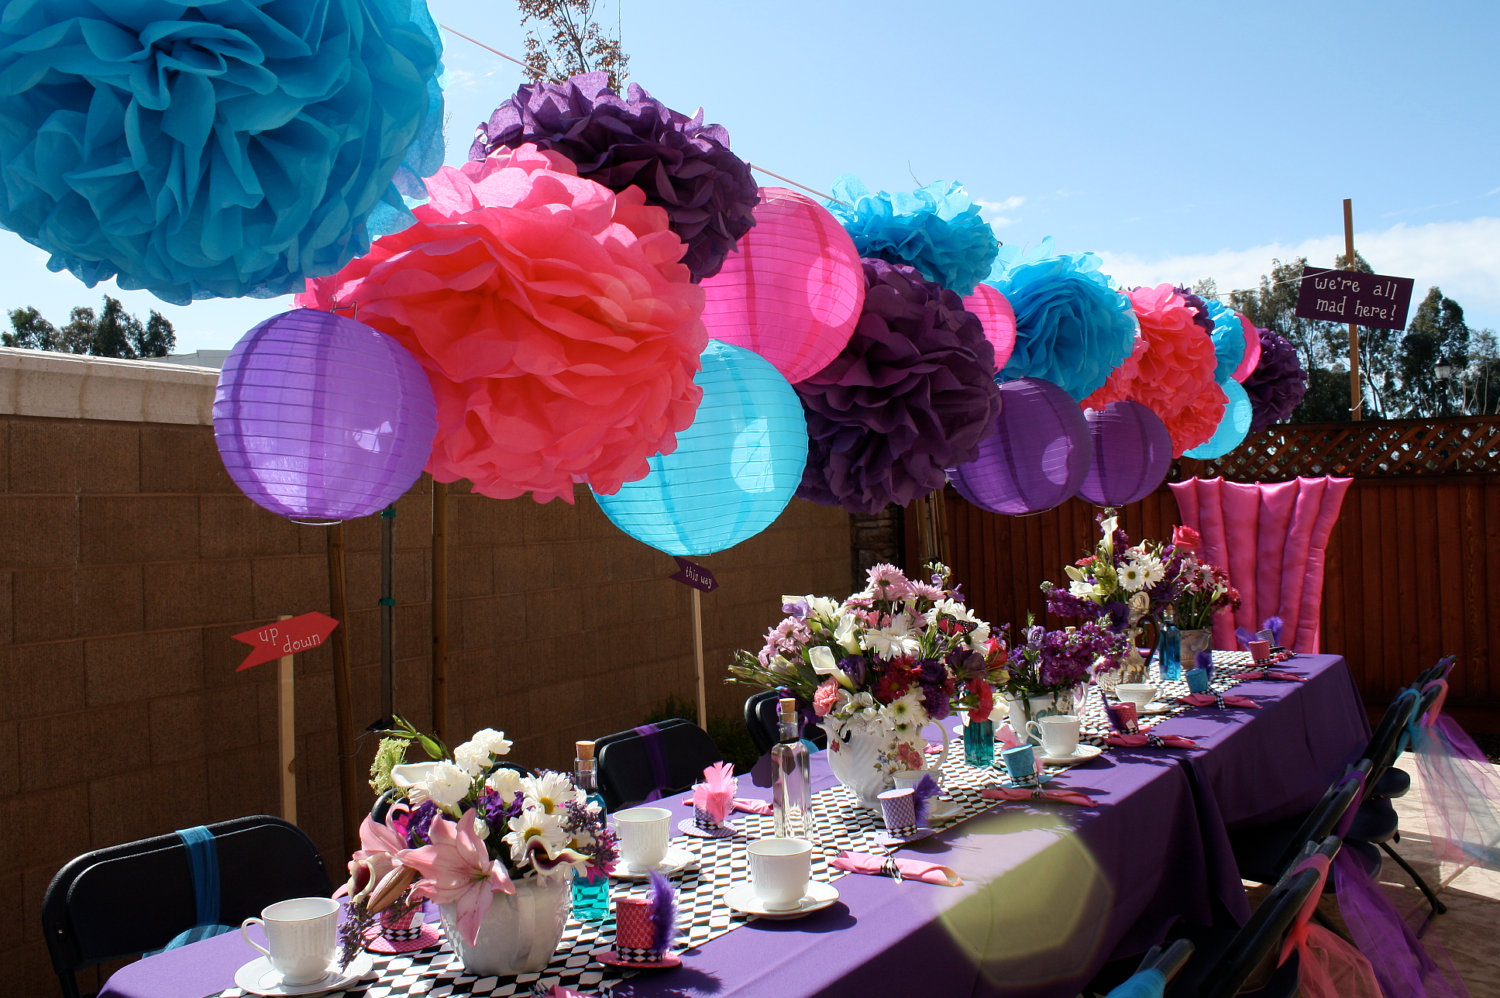 Unique-wedding-ideas-groomie-we-blew-up-the-reception-decorations ...